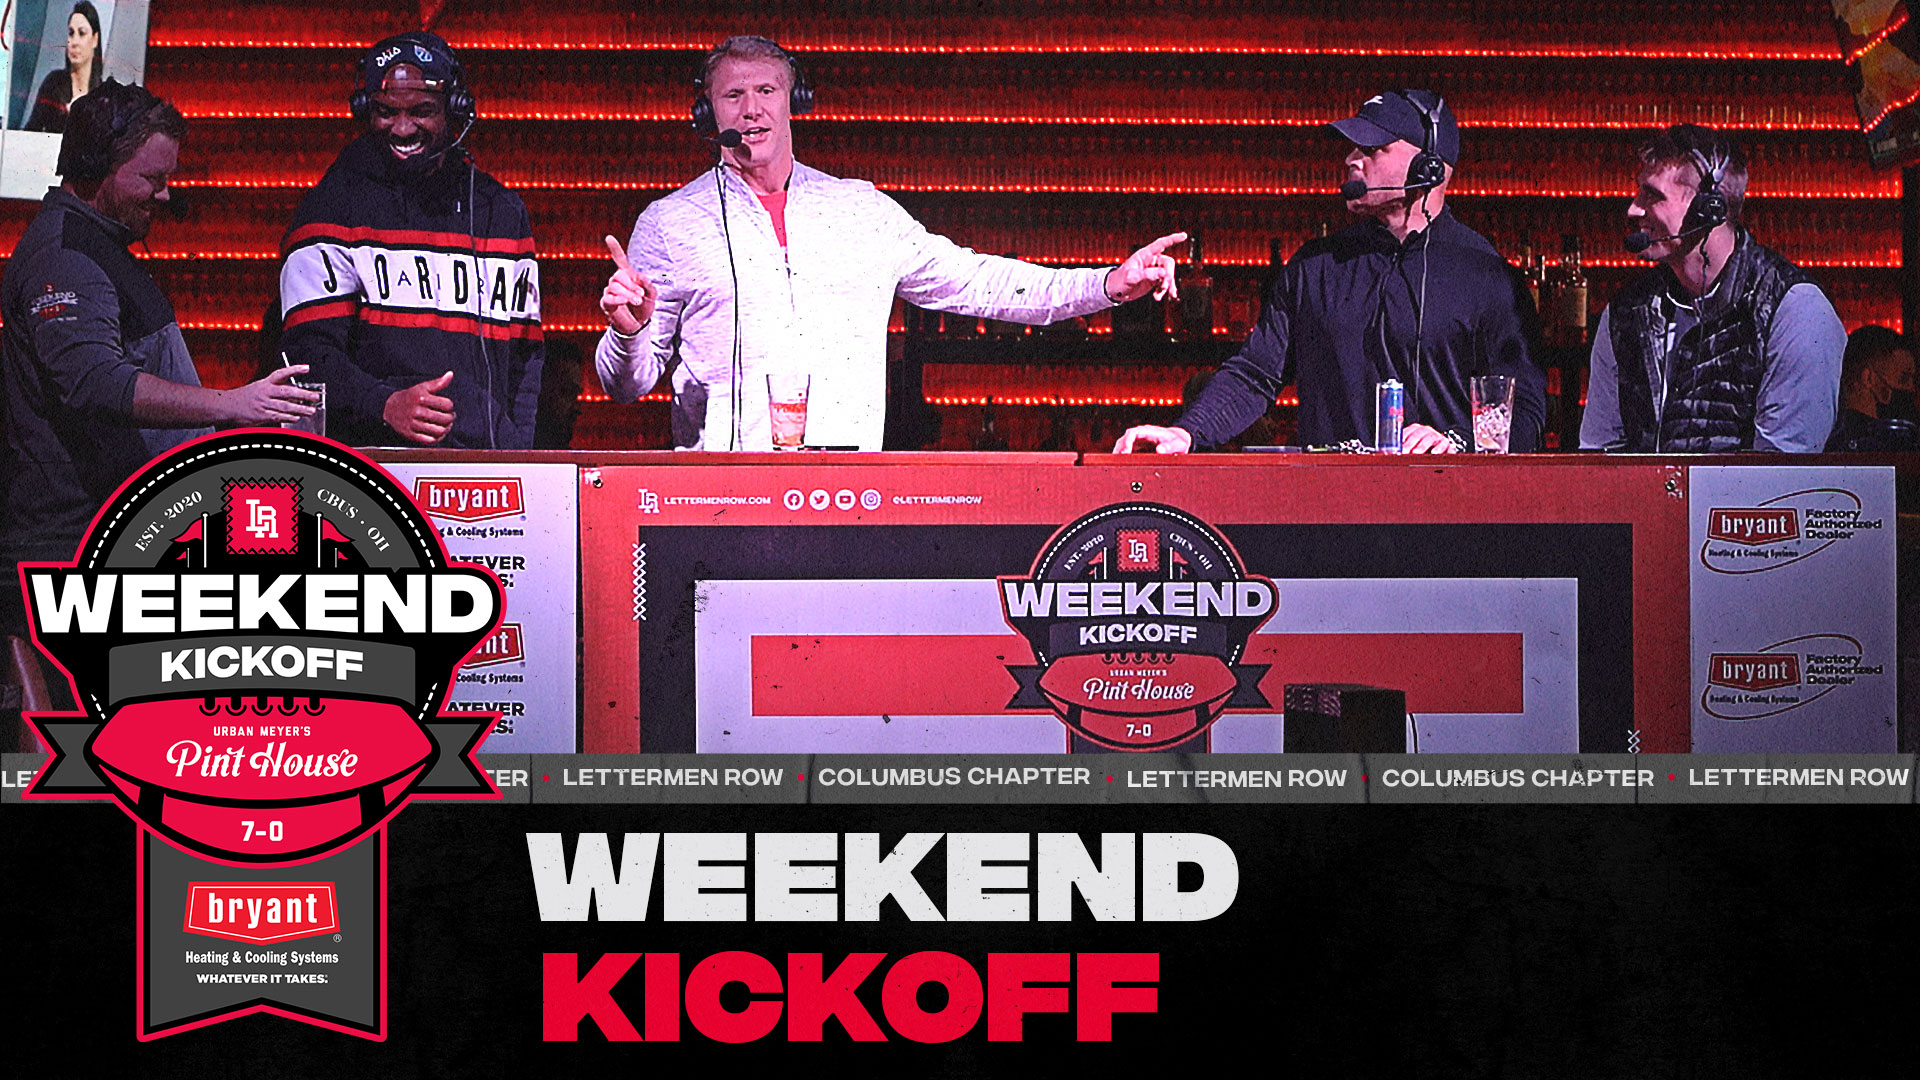 Weekend-Kickoff-featured-april-16